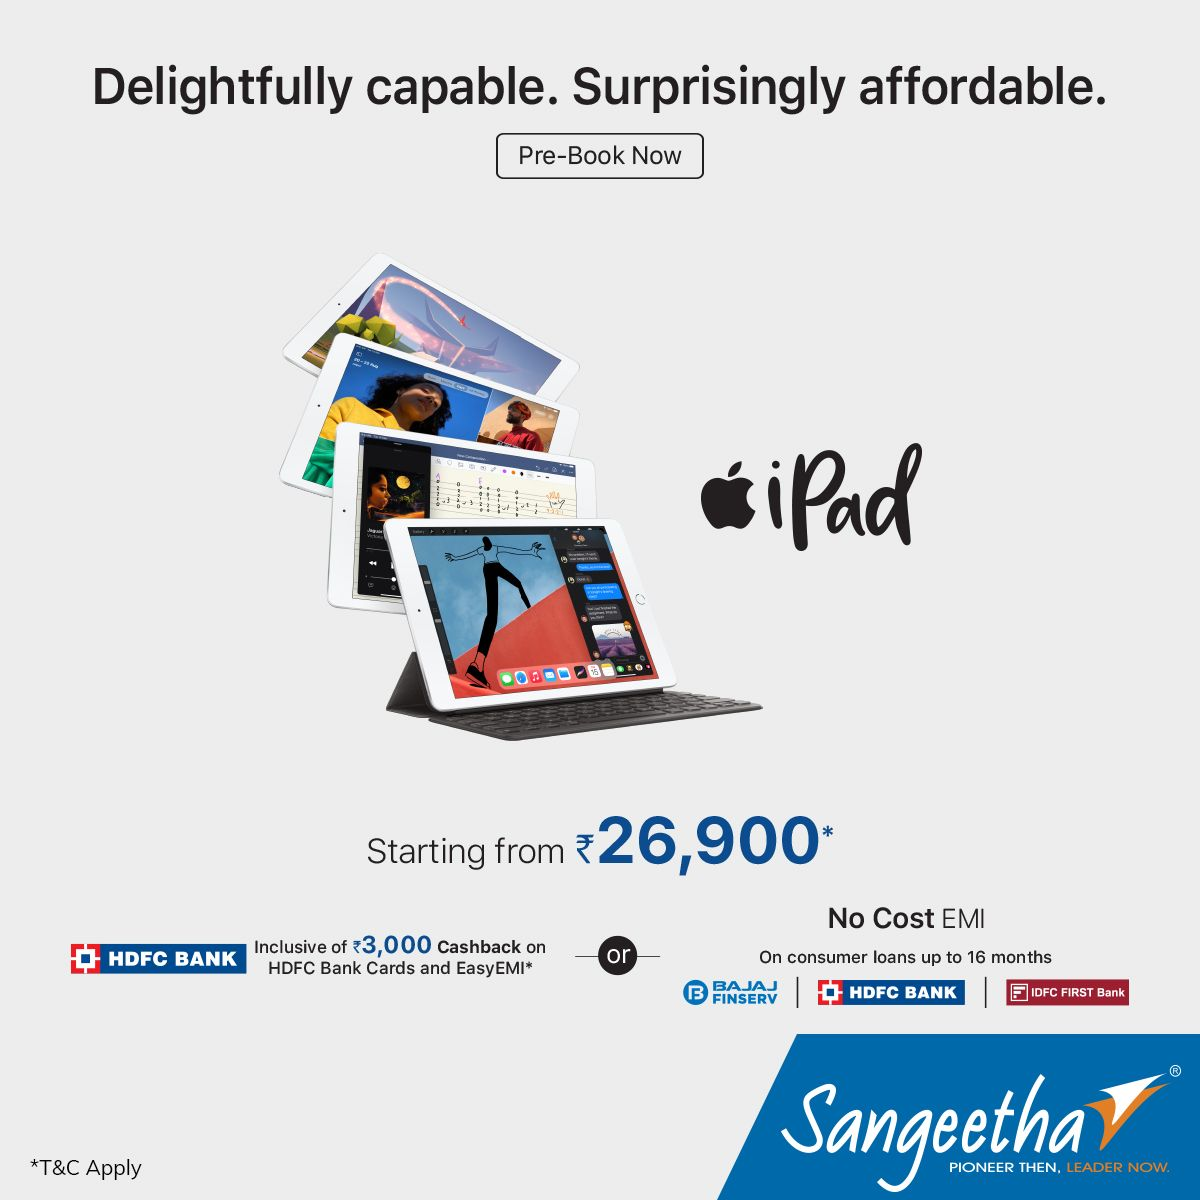 Apple iPads, a perfect combination of tremendous capability and unmatched ease of use and versatility, now at a surprisingly affordable price of Rs. 26,900. Pre-book yours now at https://t.co/x8L6QRKFdV . .  #SangeethaMobiles #Accessories #Apple #iPad #AppleiPad  #iPad8 https://t.co/BE1wqVRazX